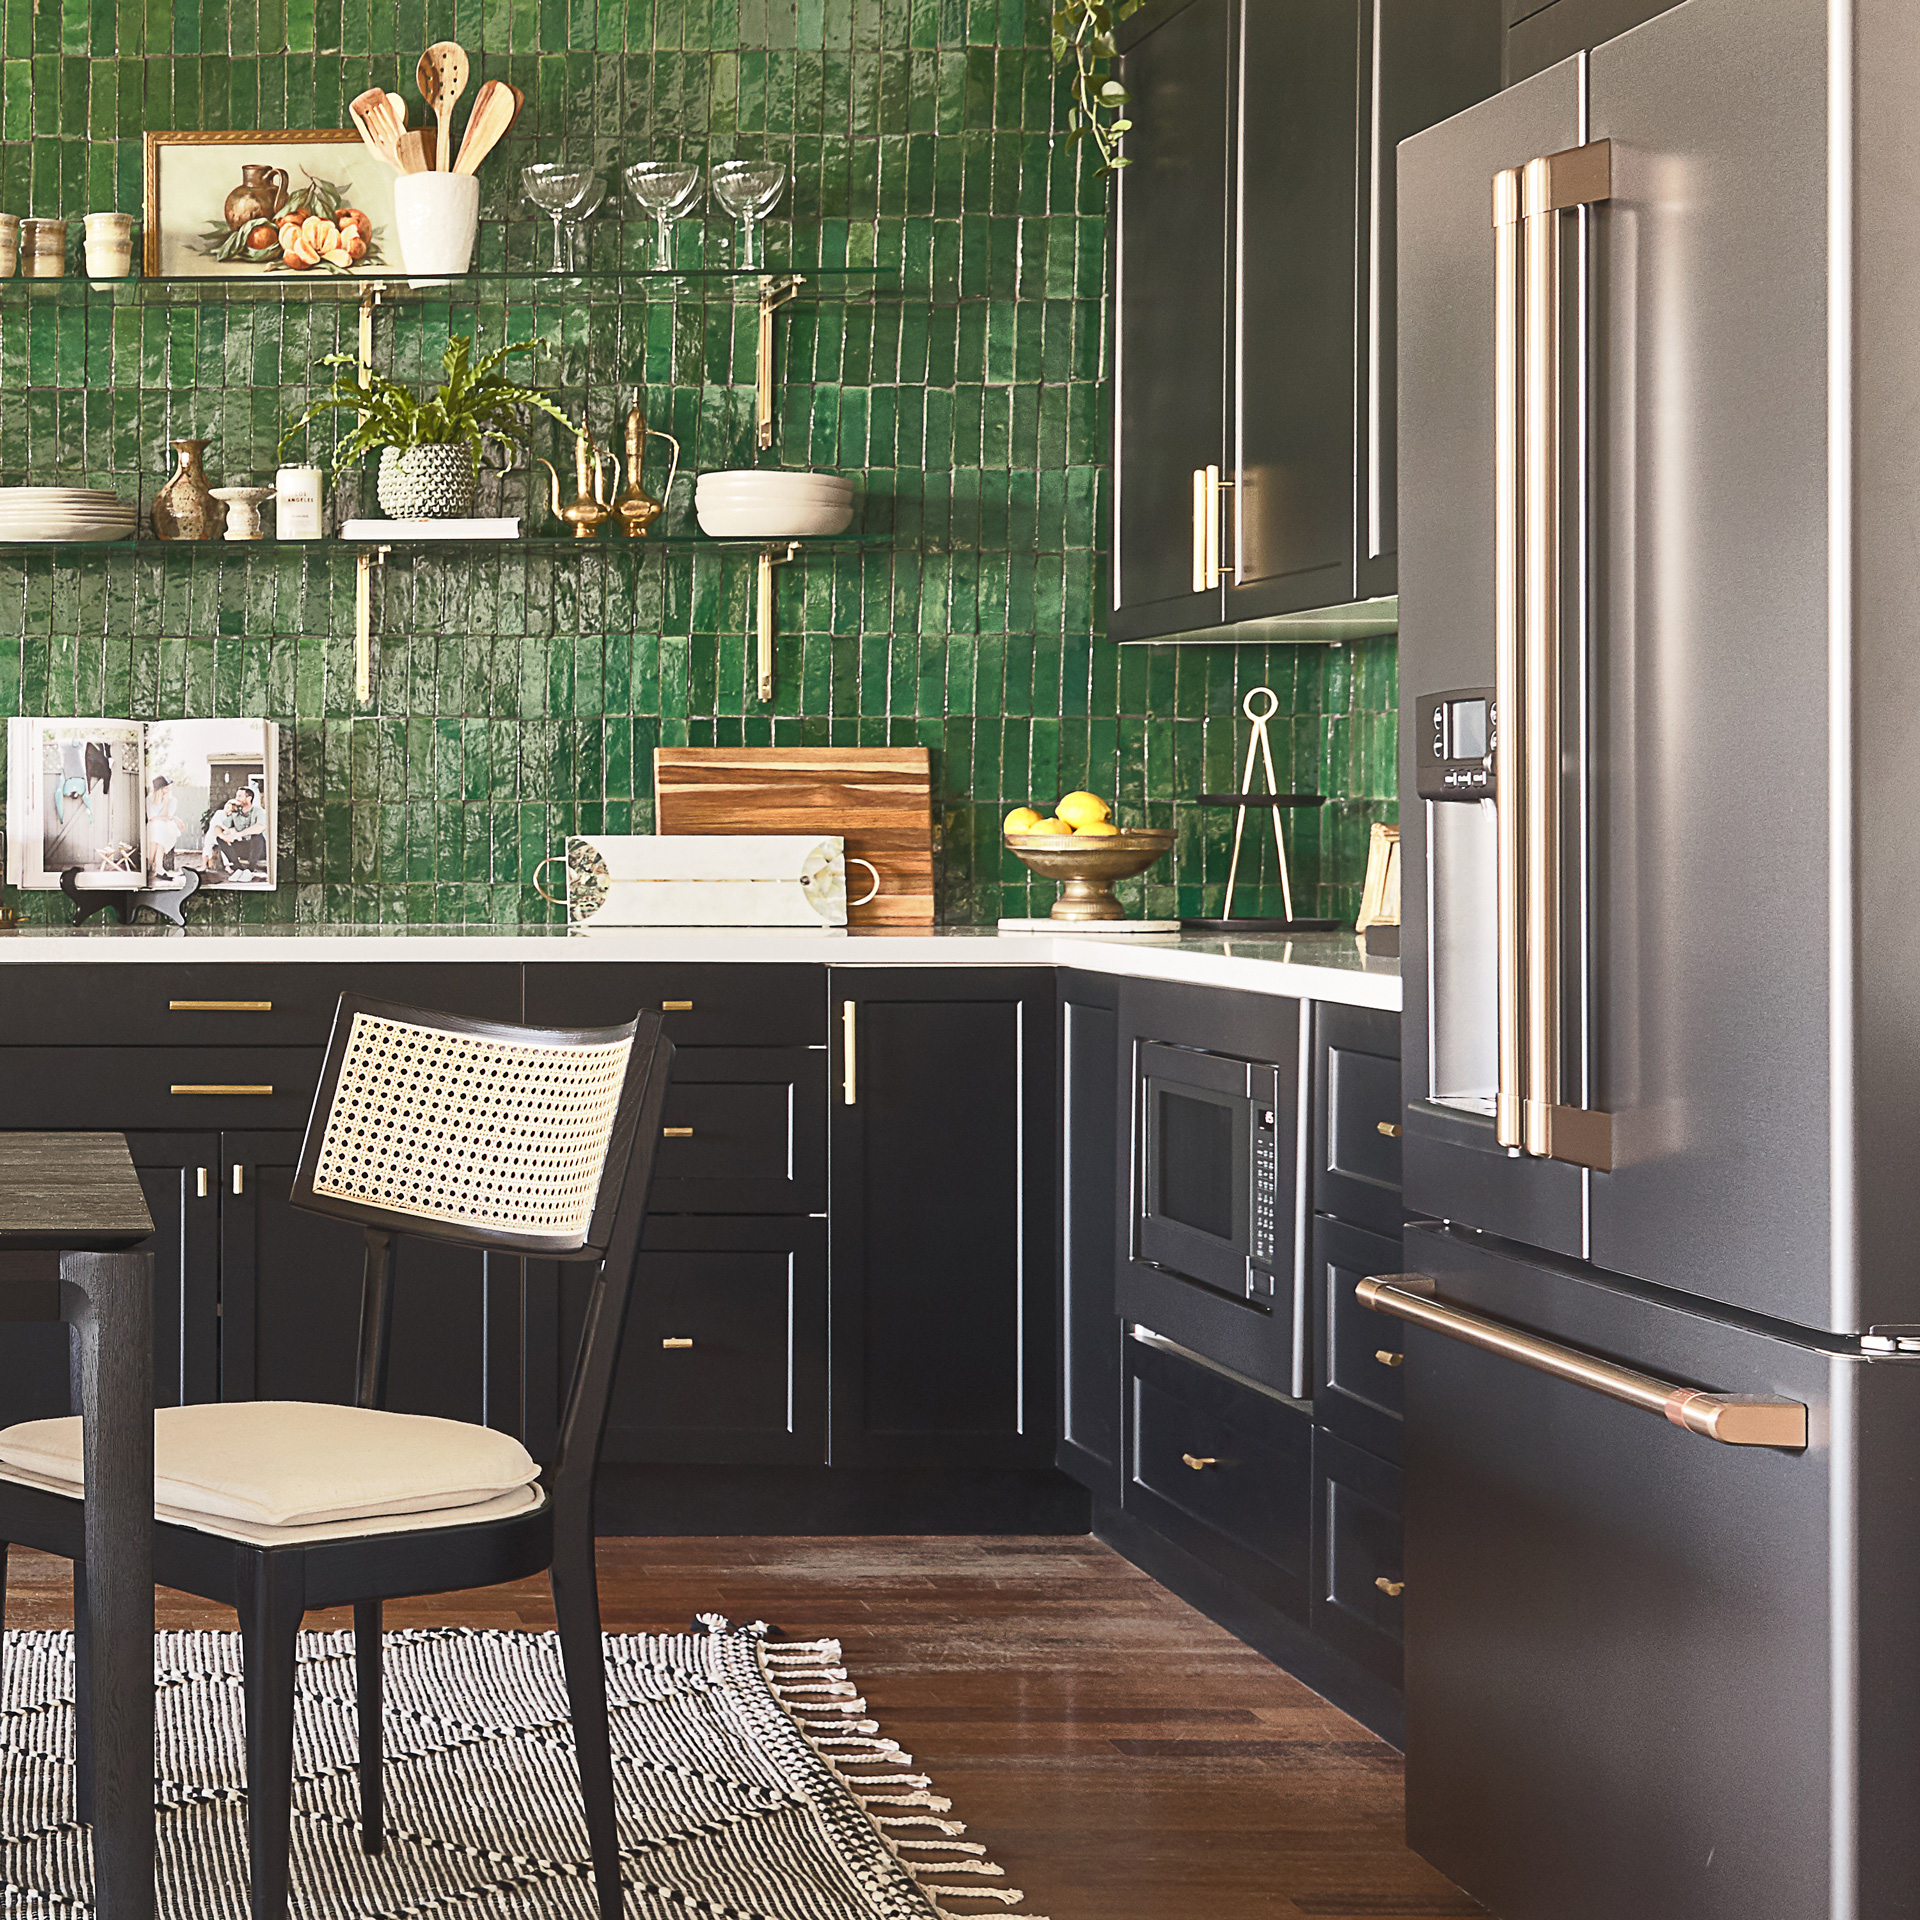 Bright green tile with Matte Black appliances